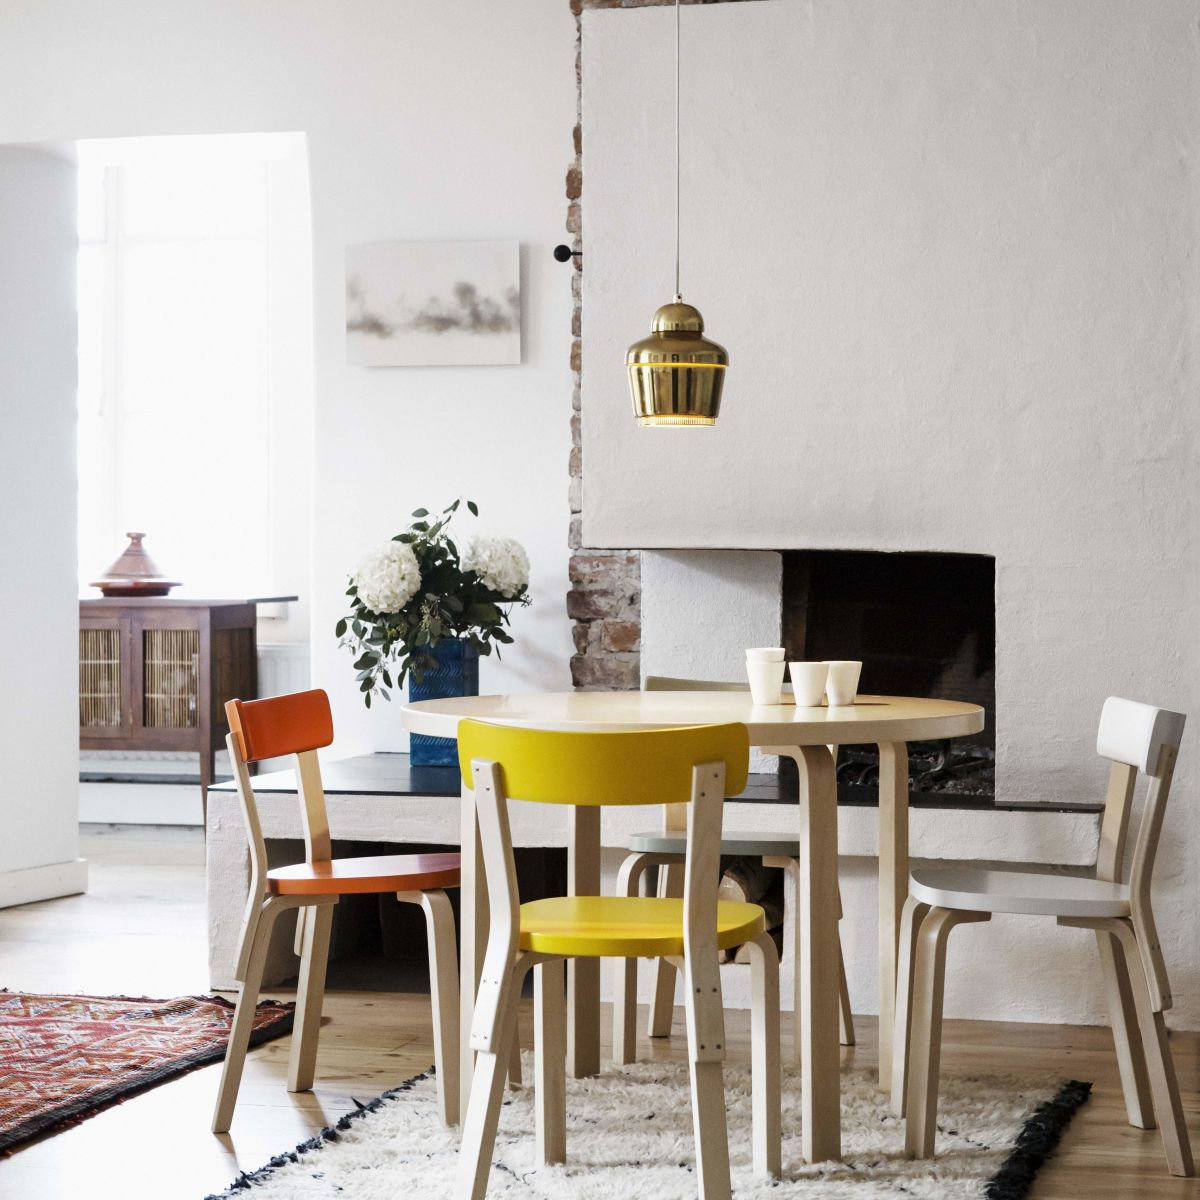 Chair 69 Aalto Table Round 90A Pendant Light A330